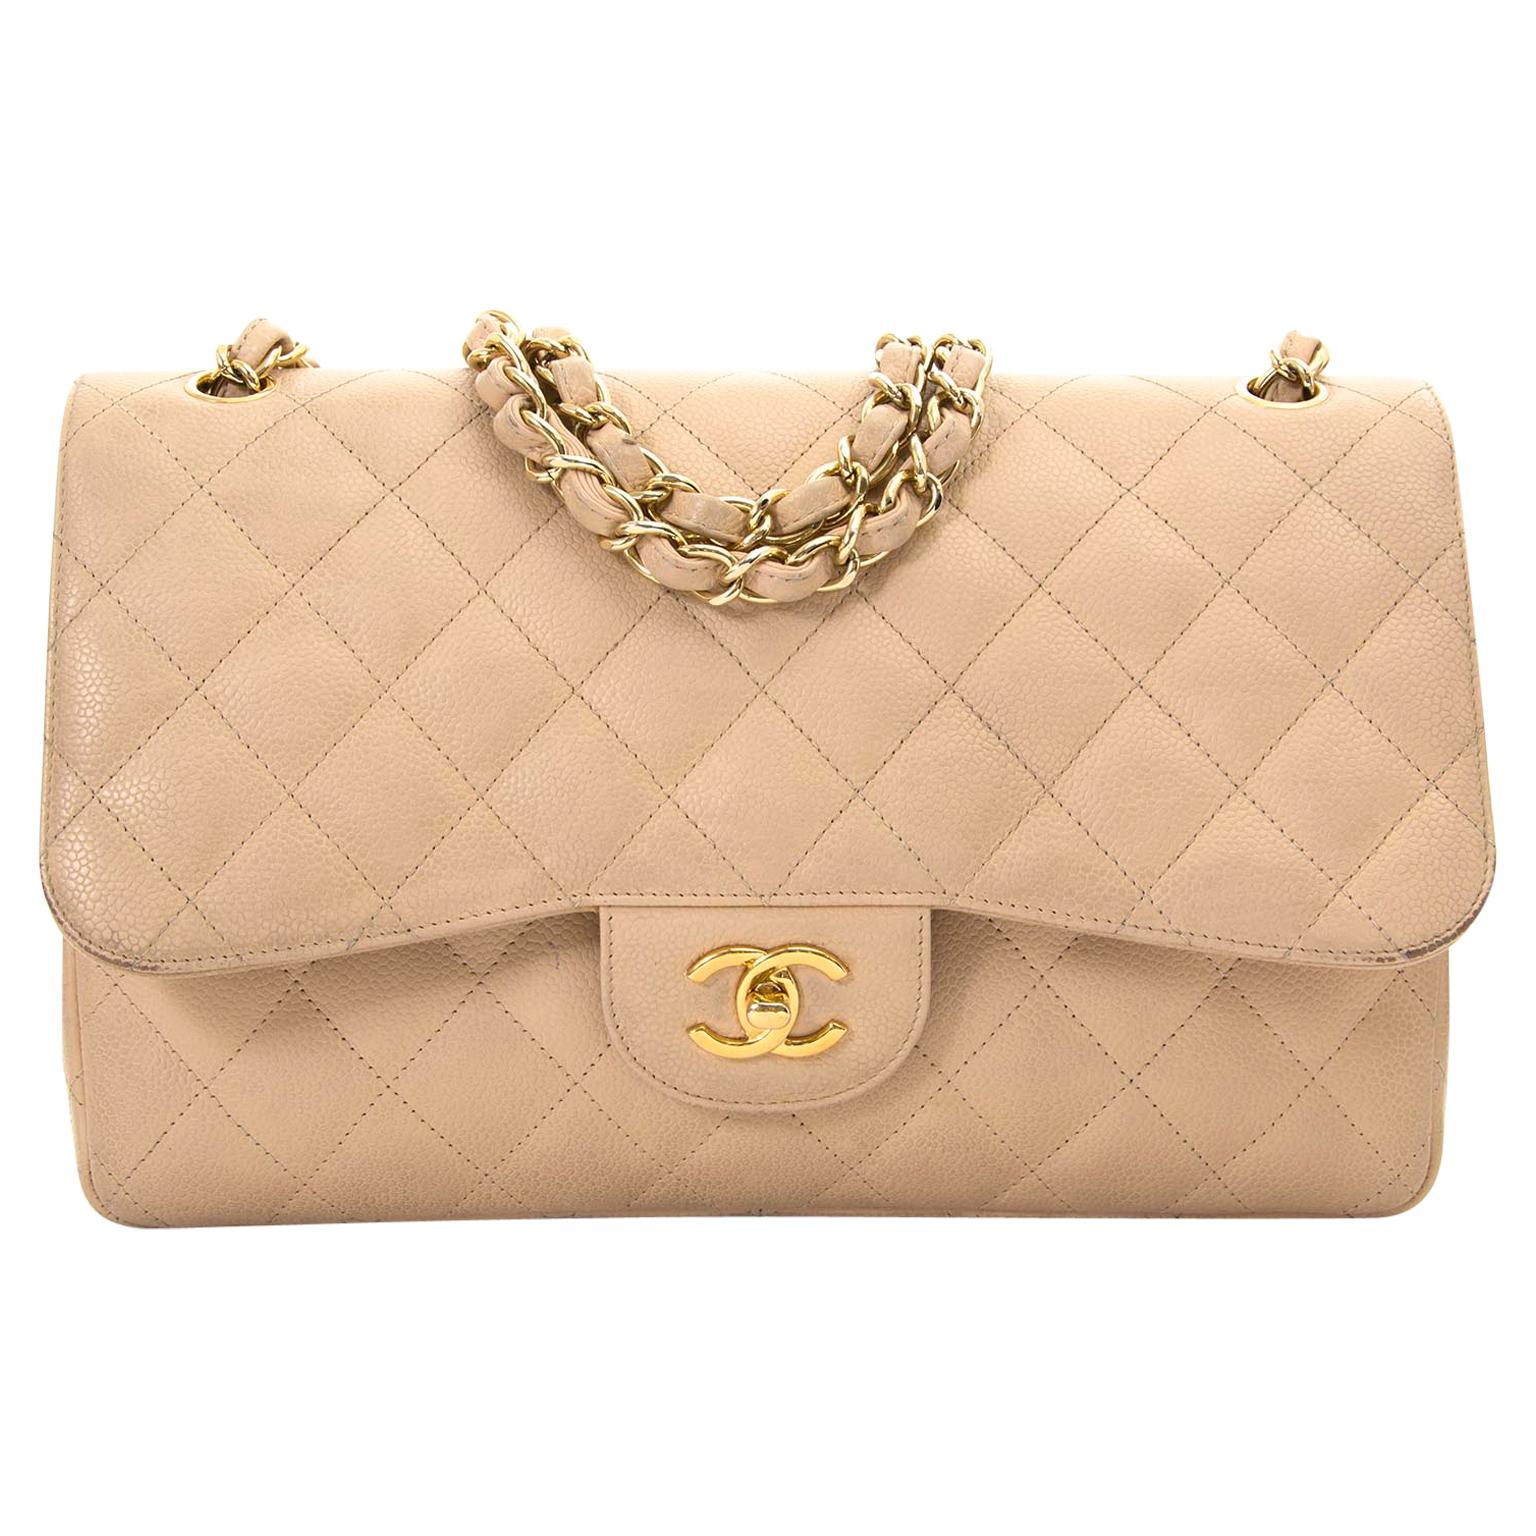 4ea3a704f6d8 Chanel Jumbo Beige Double Classic Flap Bag Caviar GHW at 1stdibs